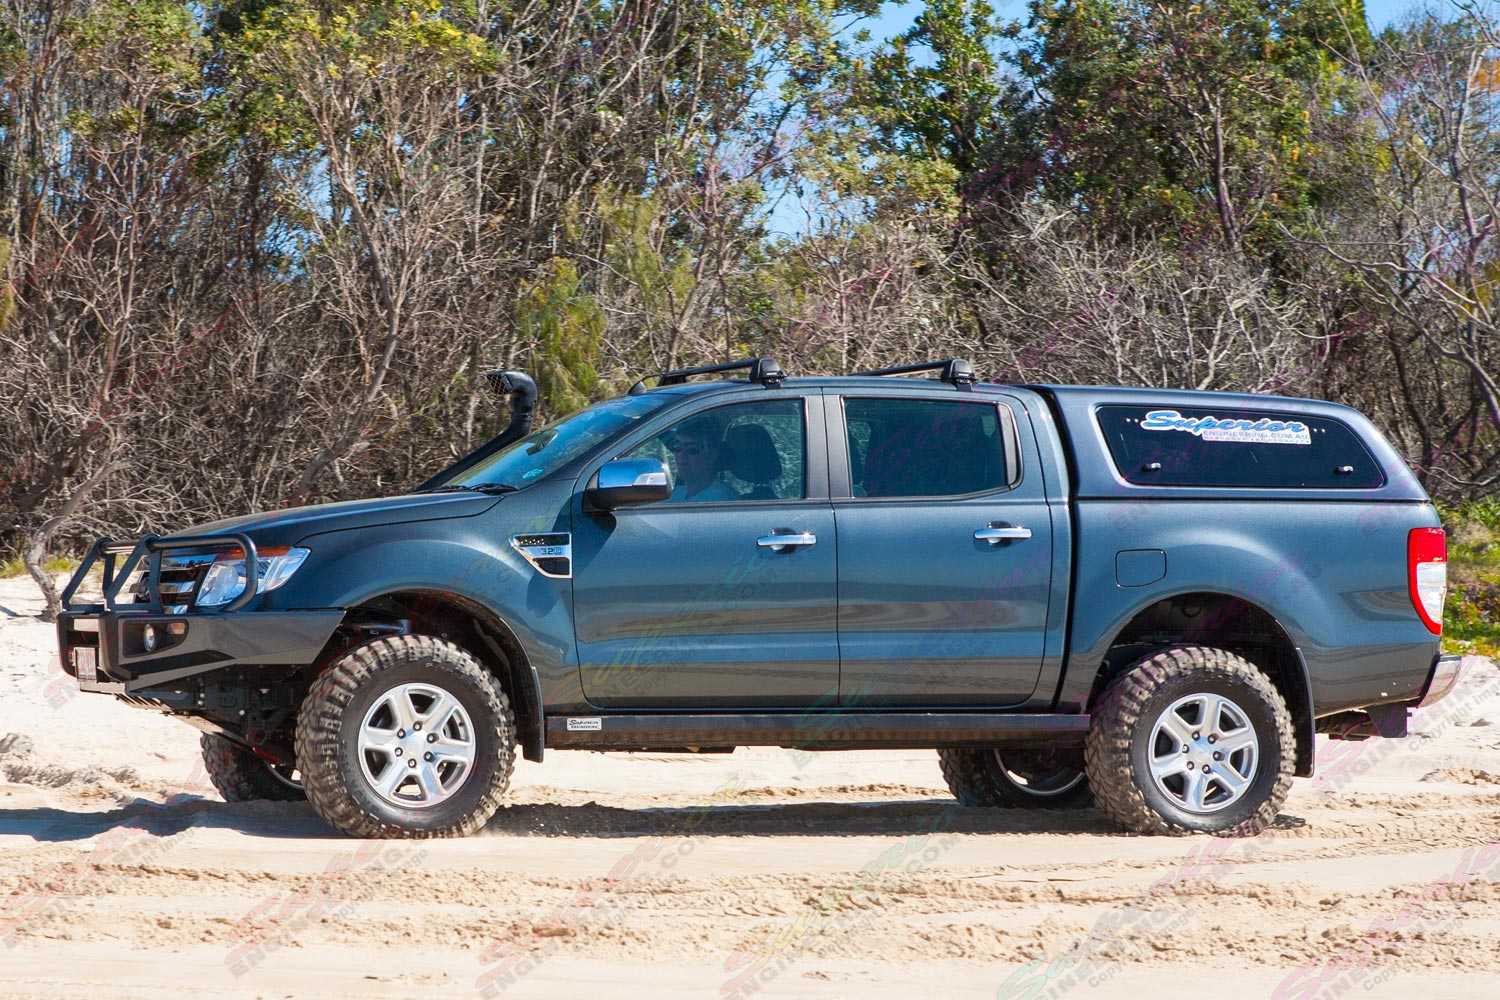 Left side view of a black PX Ford Ranger (Dual Cab) on some soft sand fitted with a 2 inch Superior Engineering nitro gas lift kit